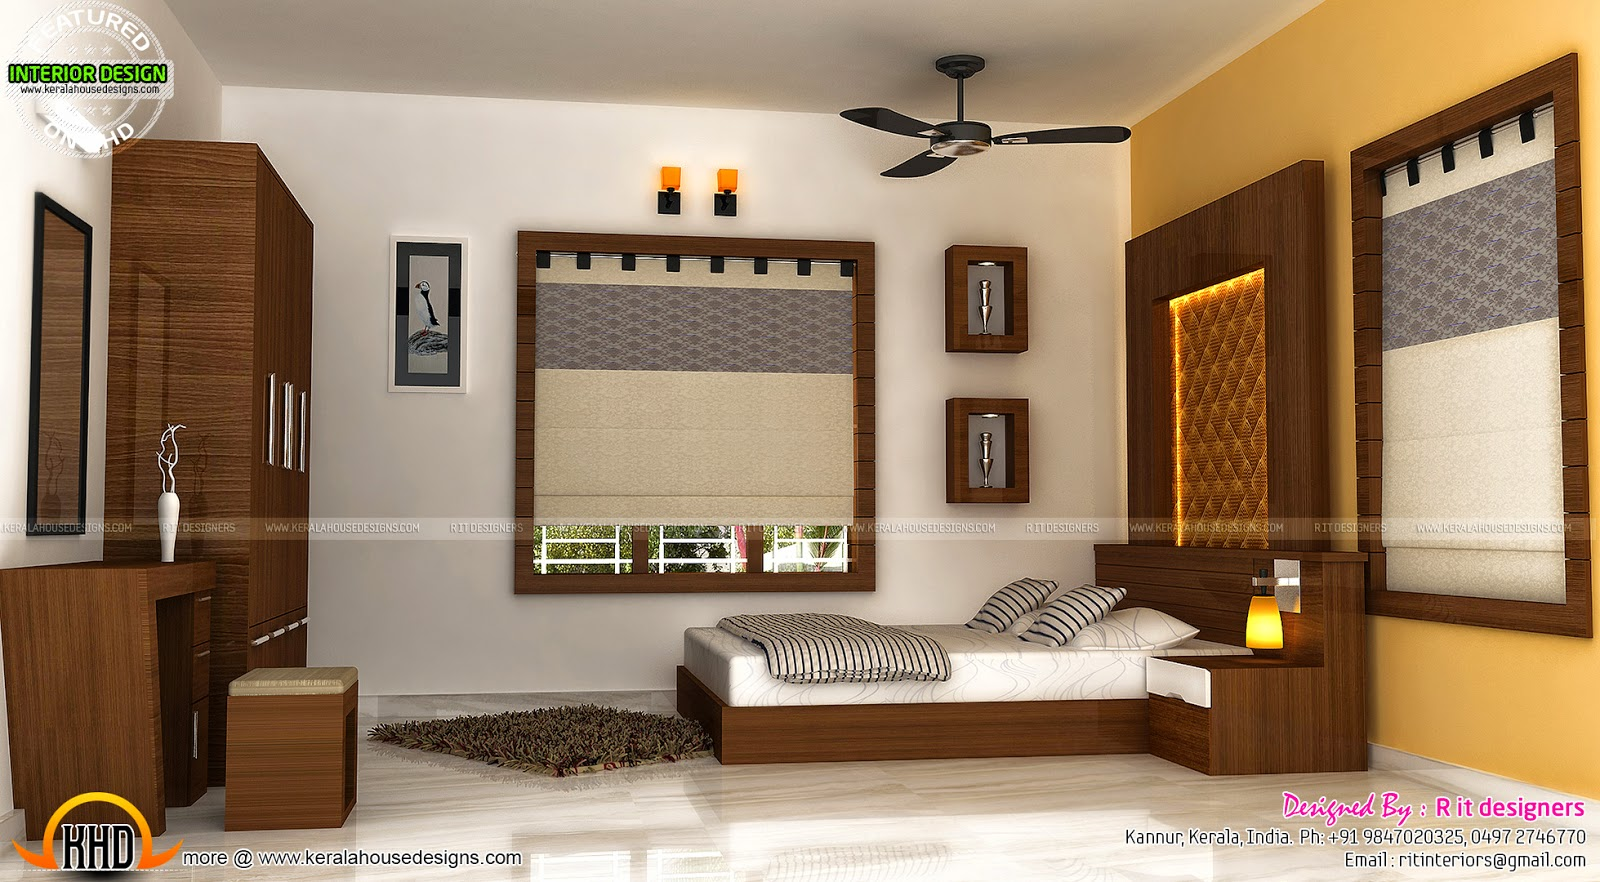 Staircase bedroom dining interiors kerala home design for Indoor design in home